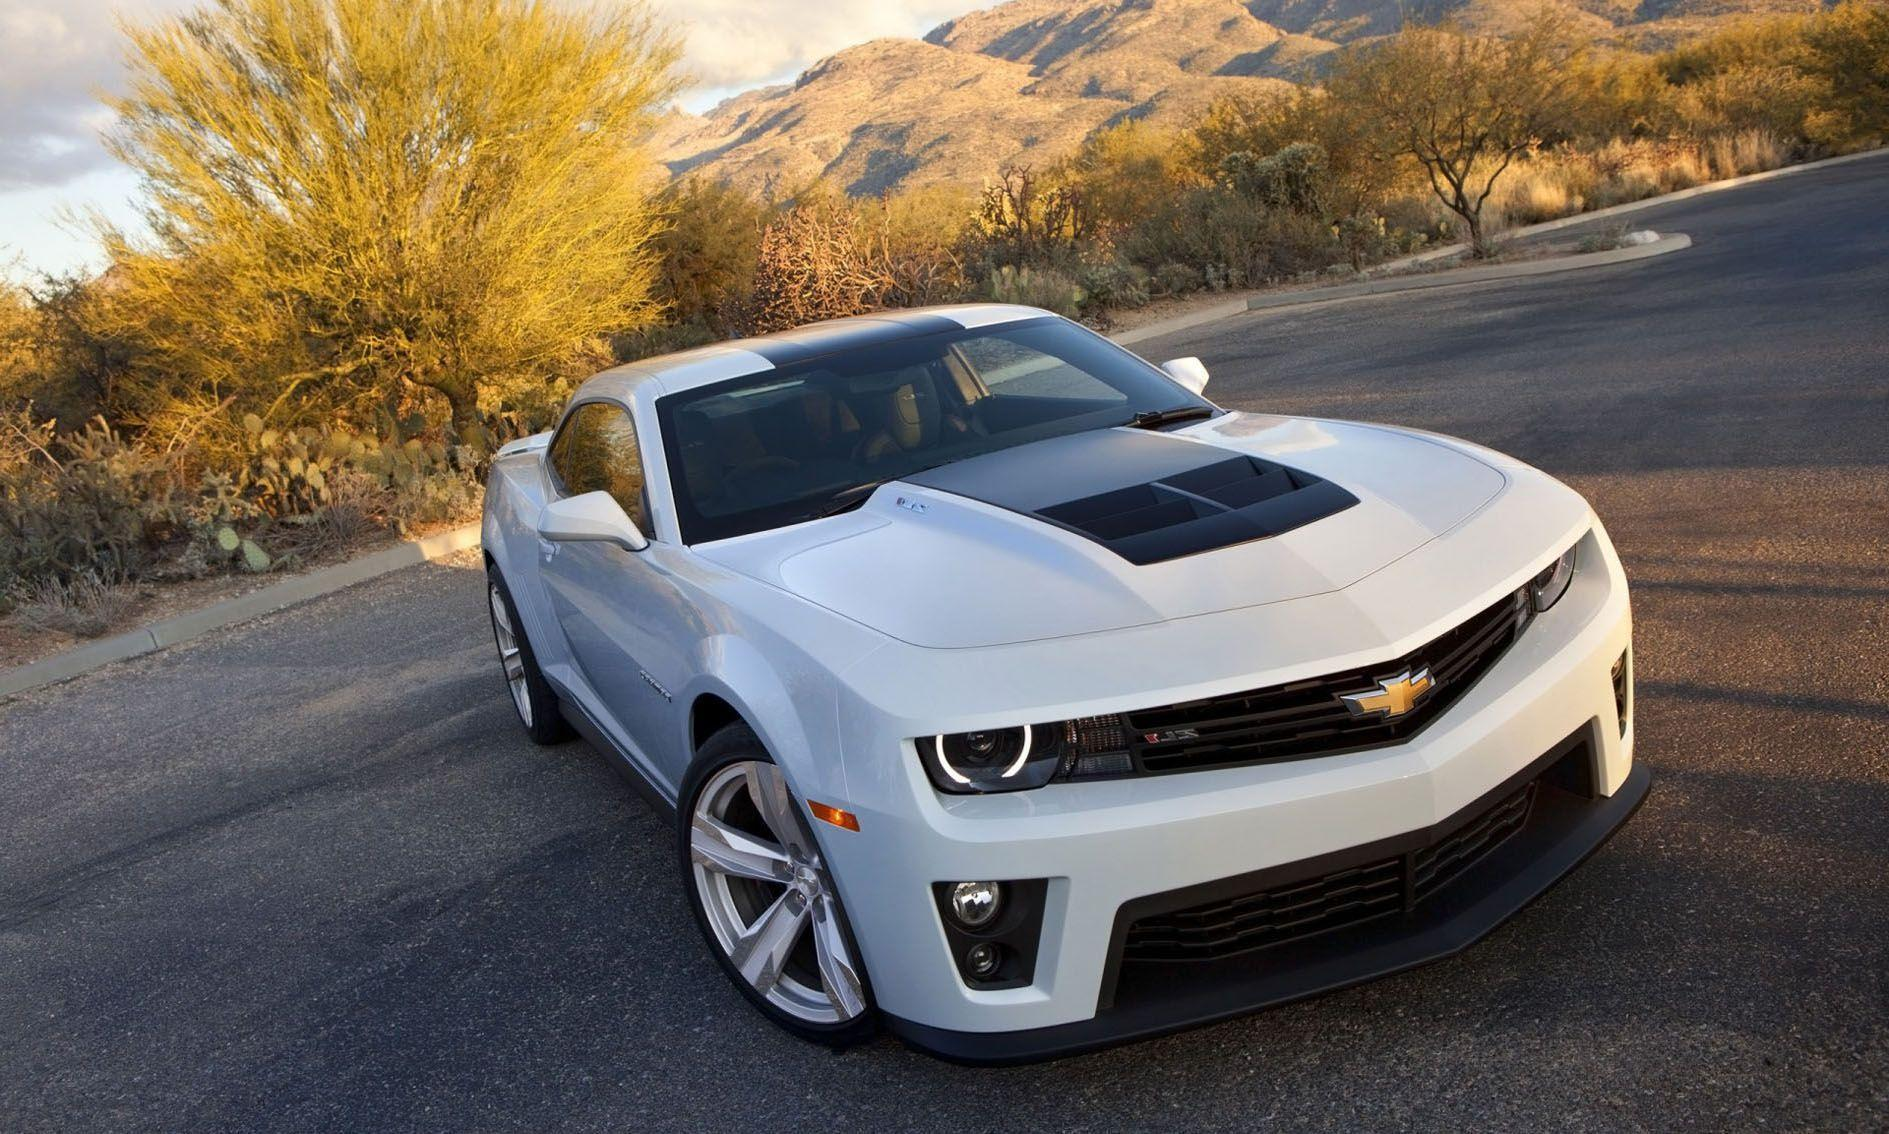 Gallery For gt Camaro Zl1 White Wallpaper 1889x1134